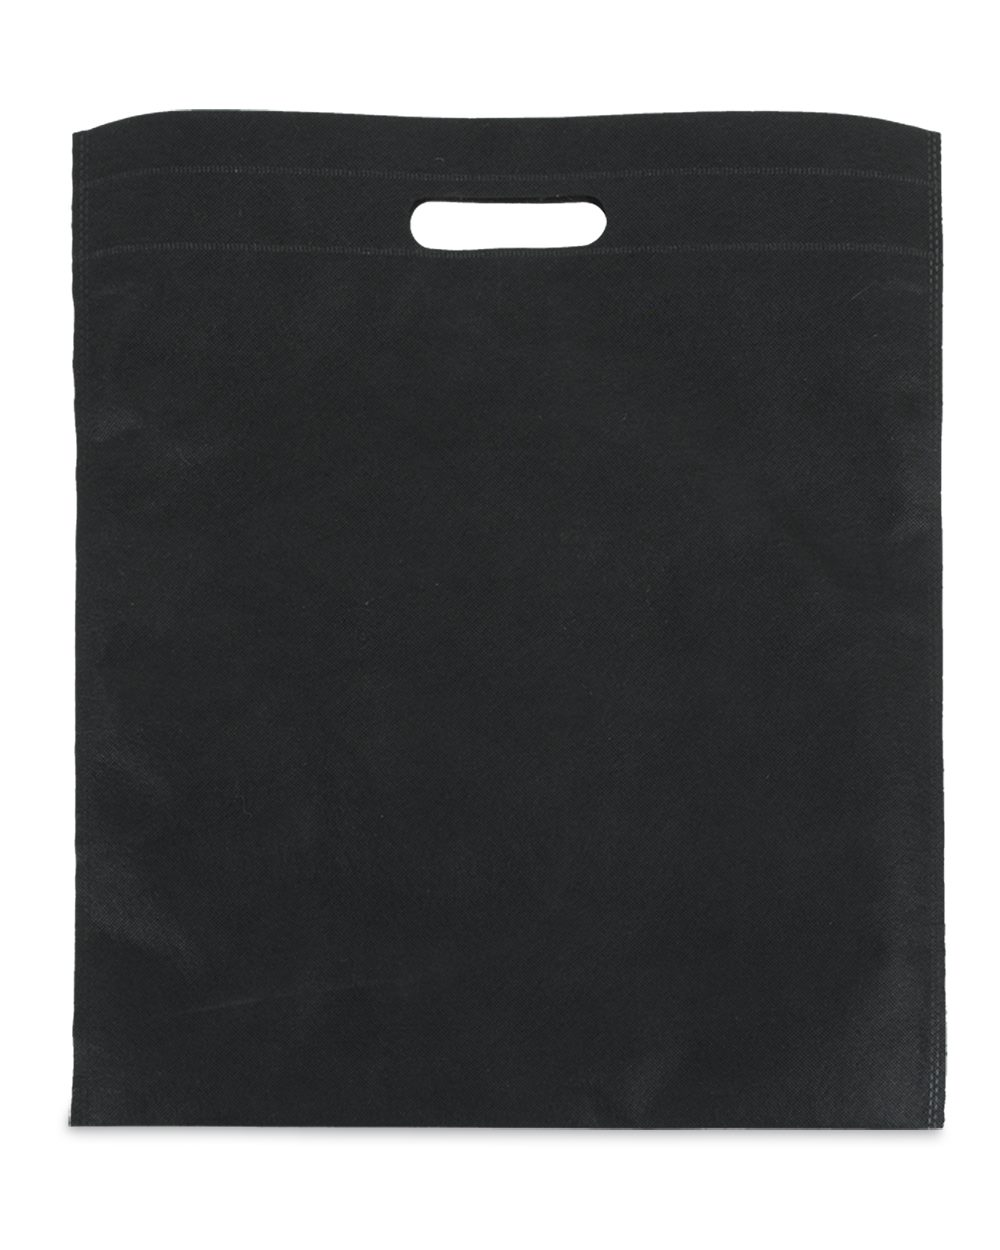 Valubag VB0886 - Heat Sealed Non Woven Shopping Bag